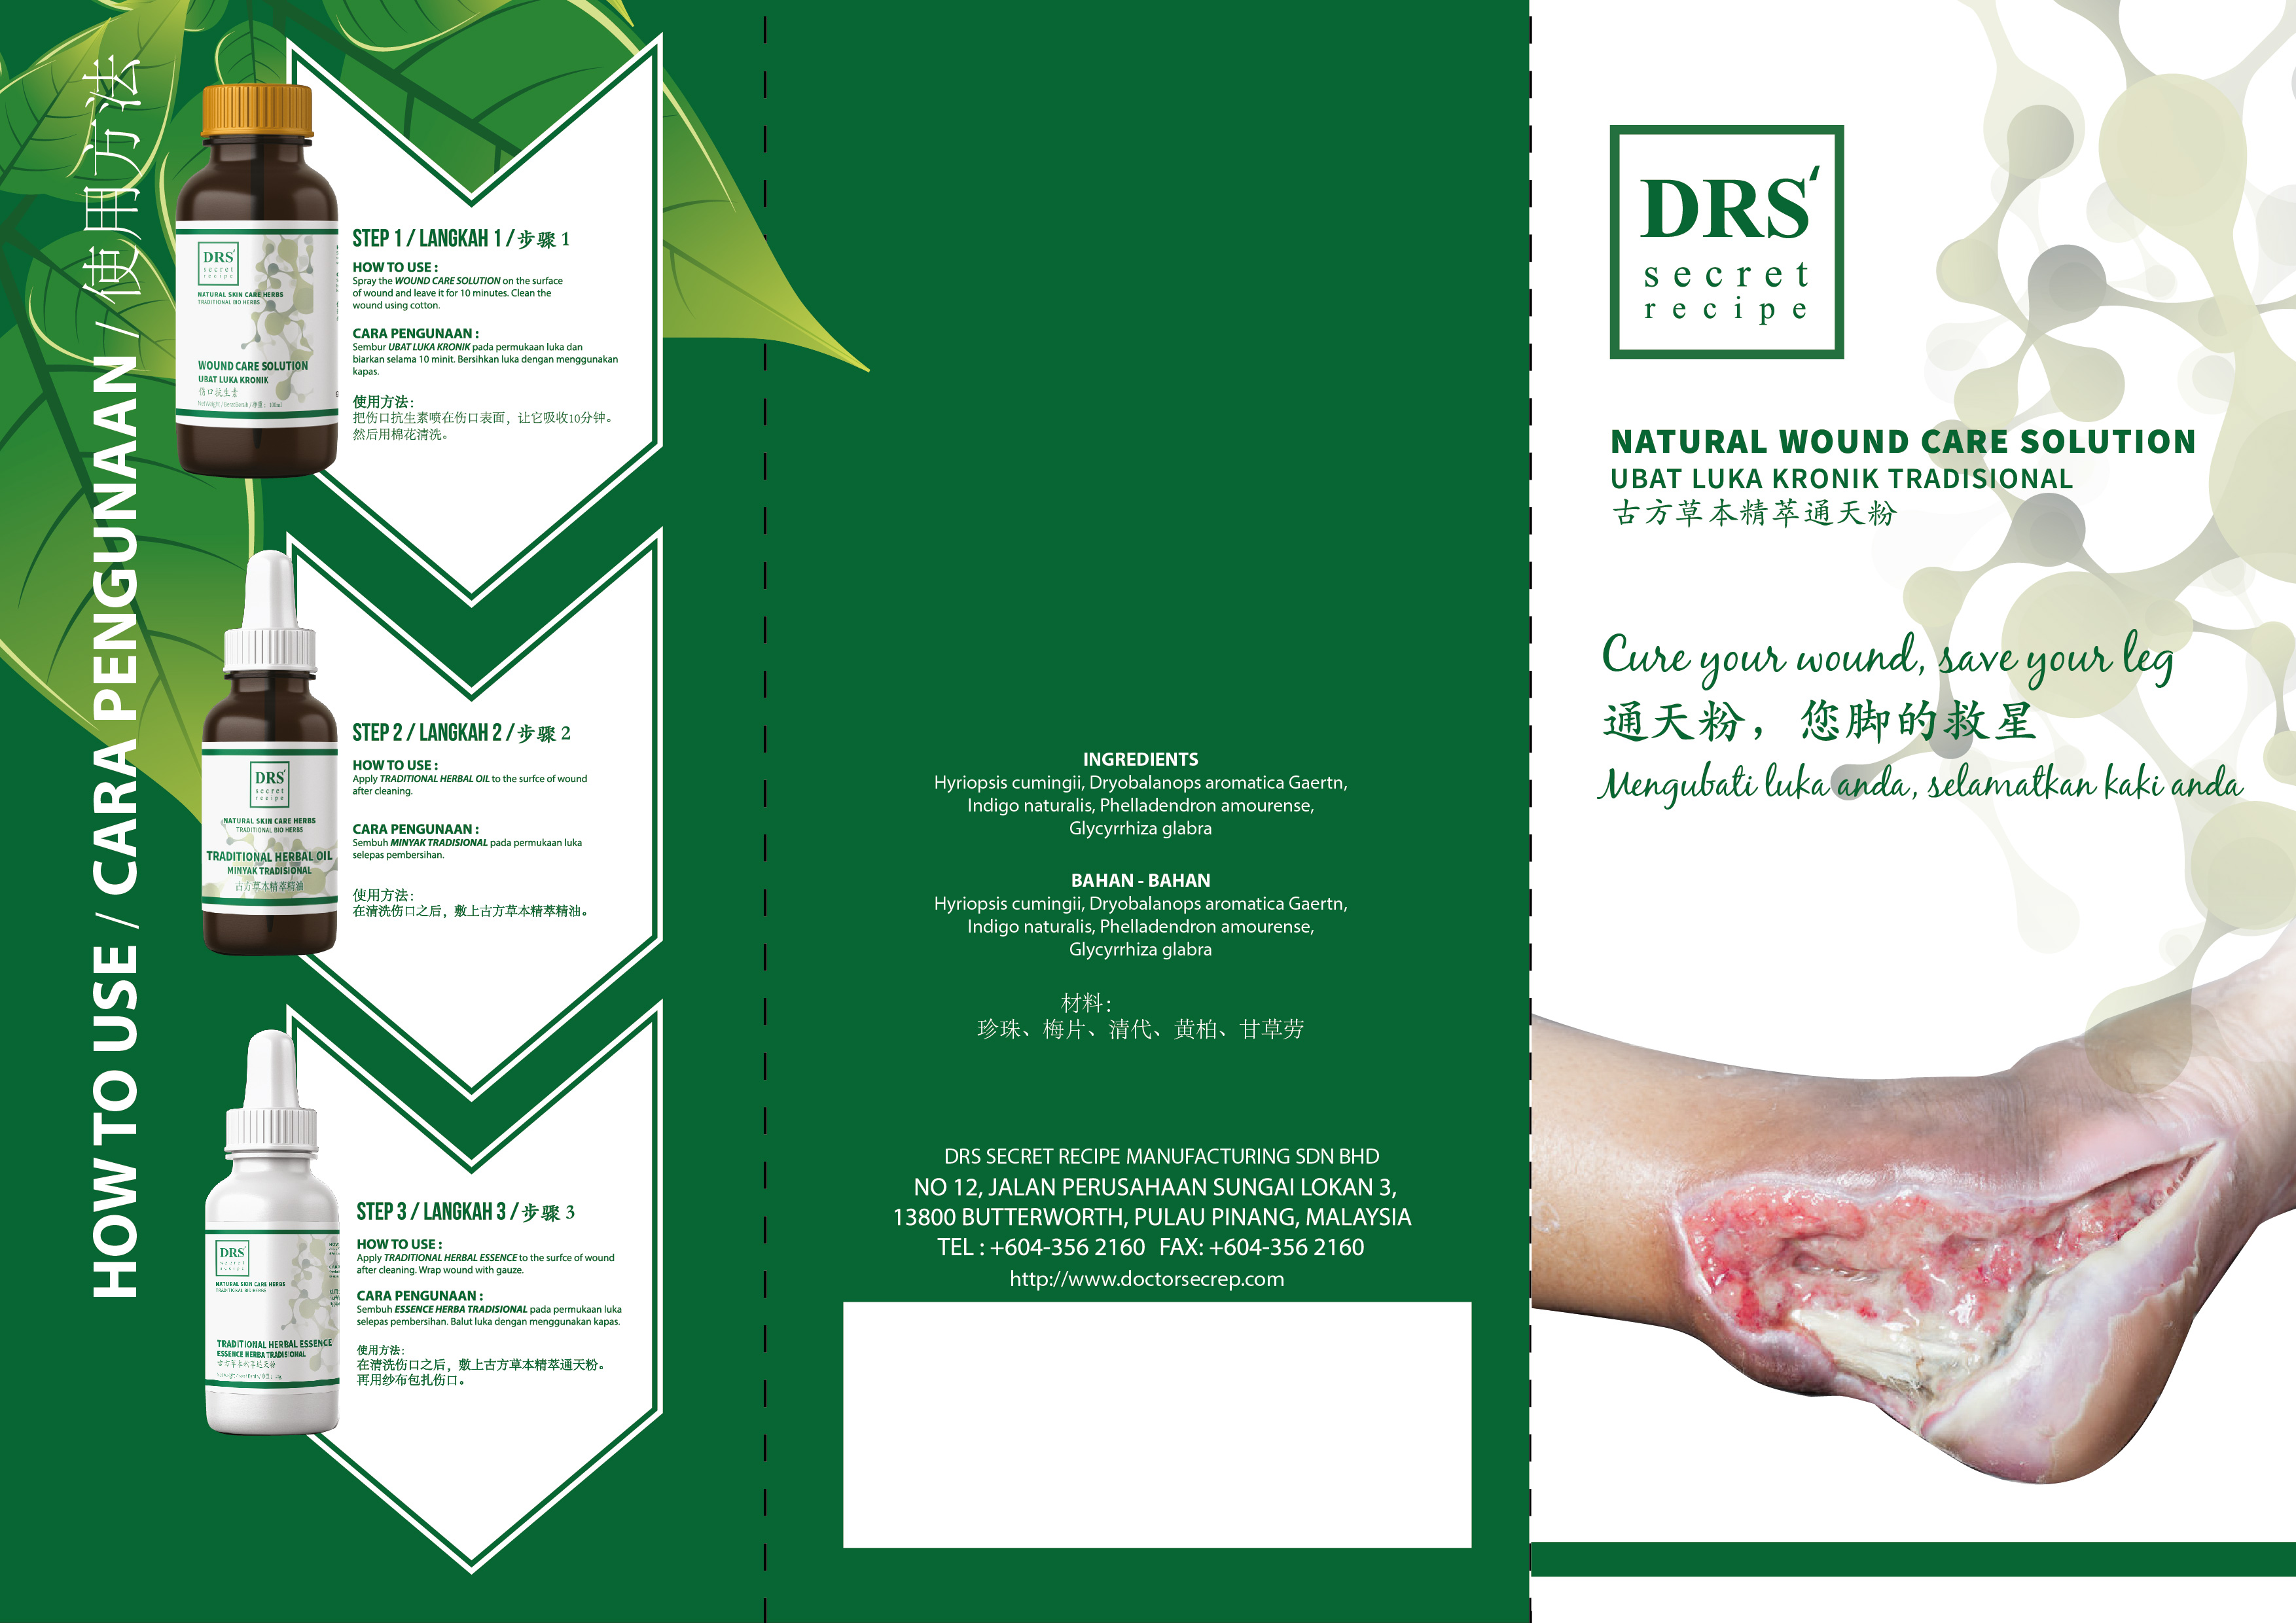 (Diabetic wound savior)Natural Wound Care Solution